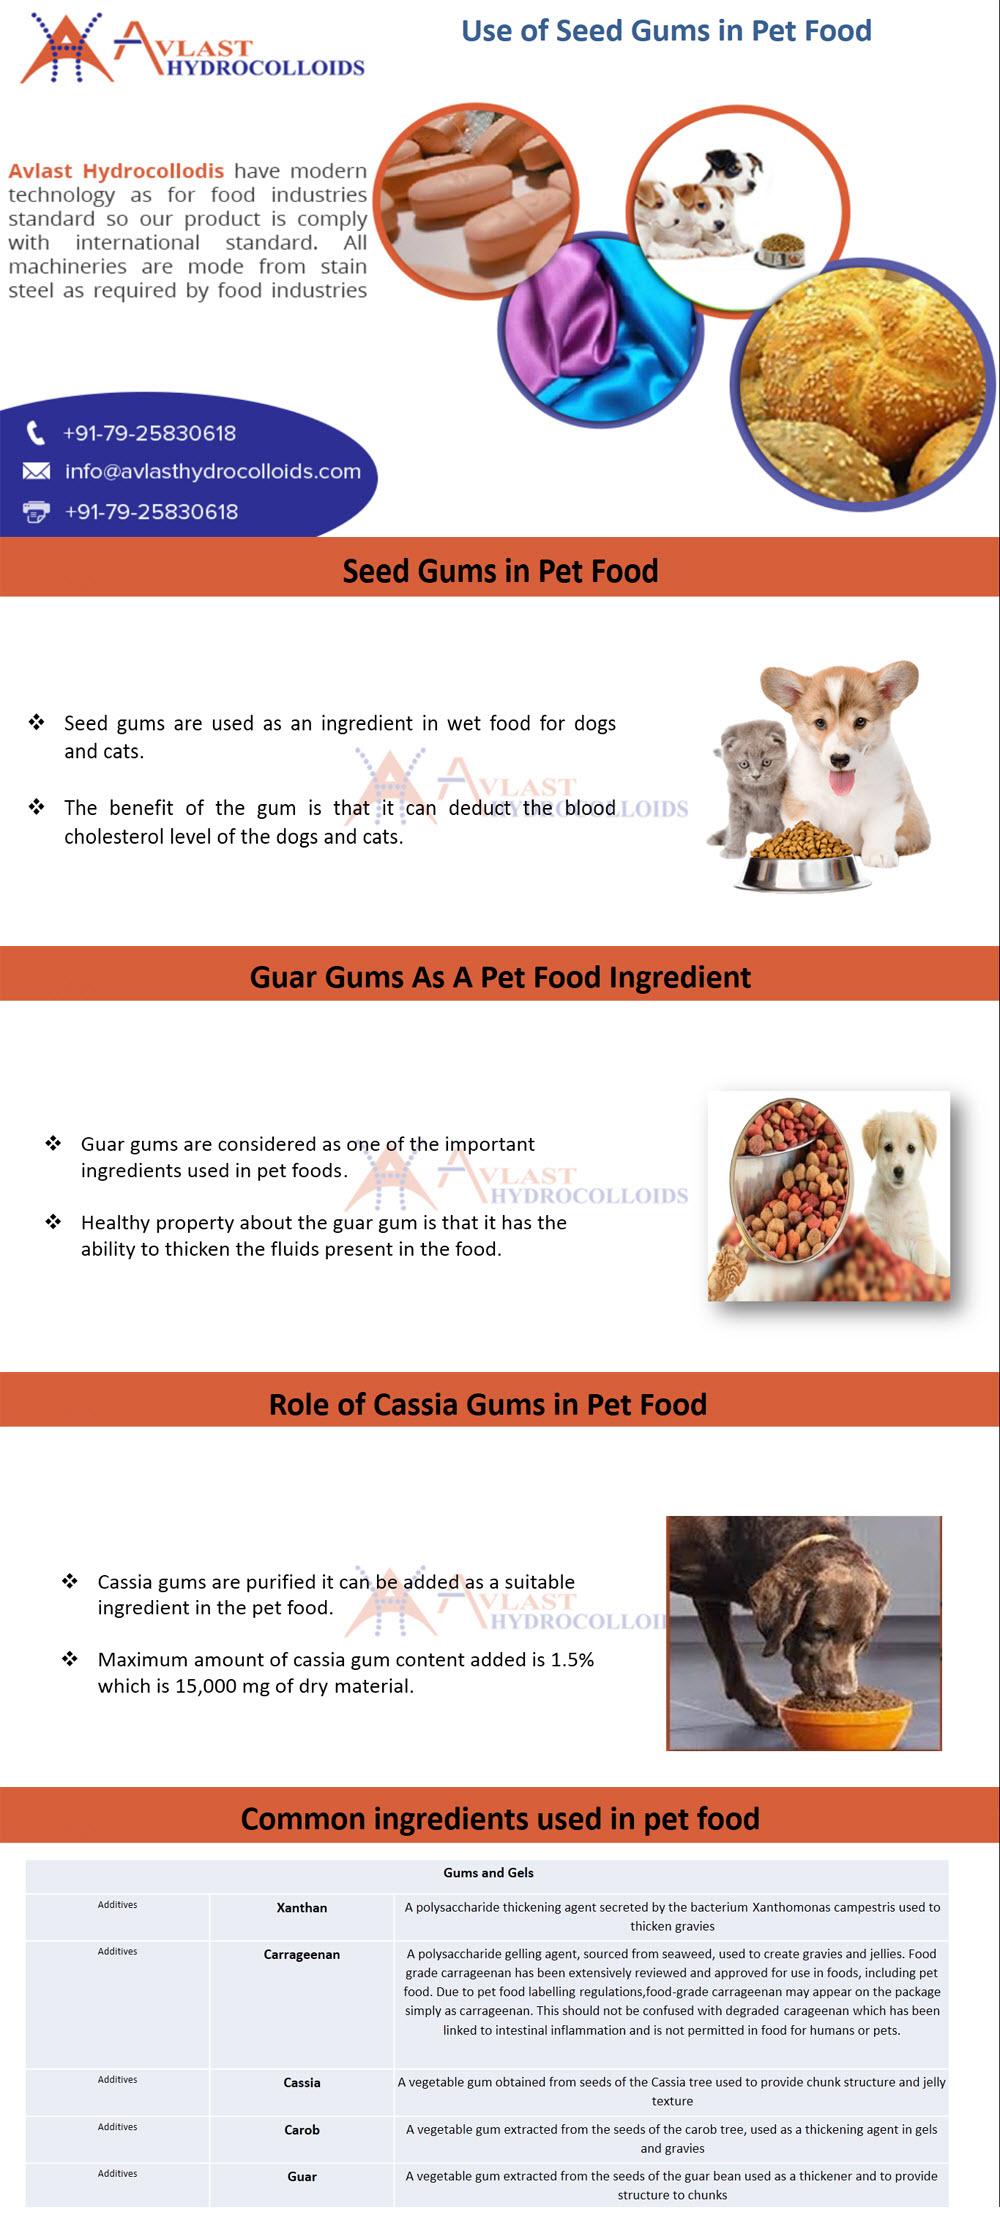 Use of Seed Gums in Pet Food